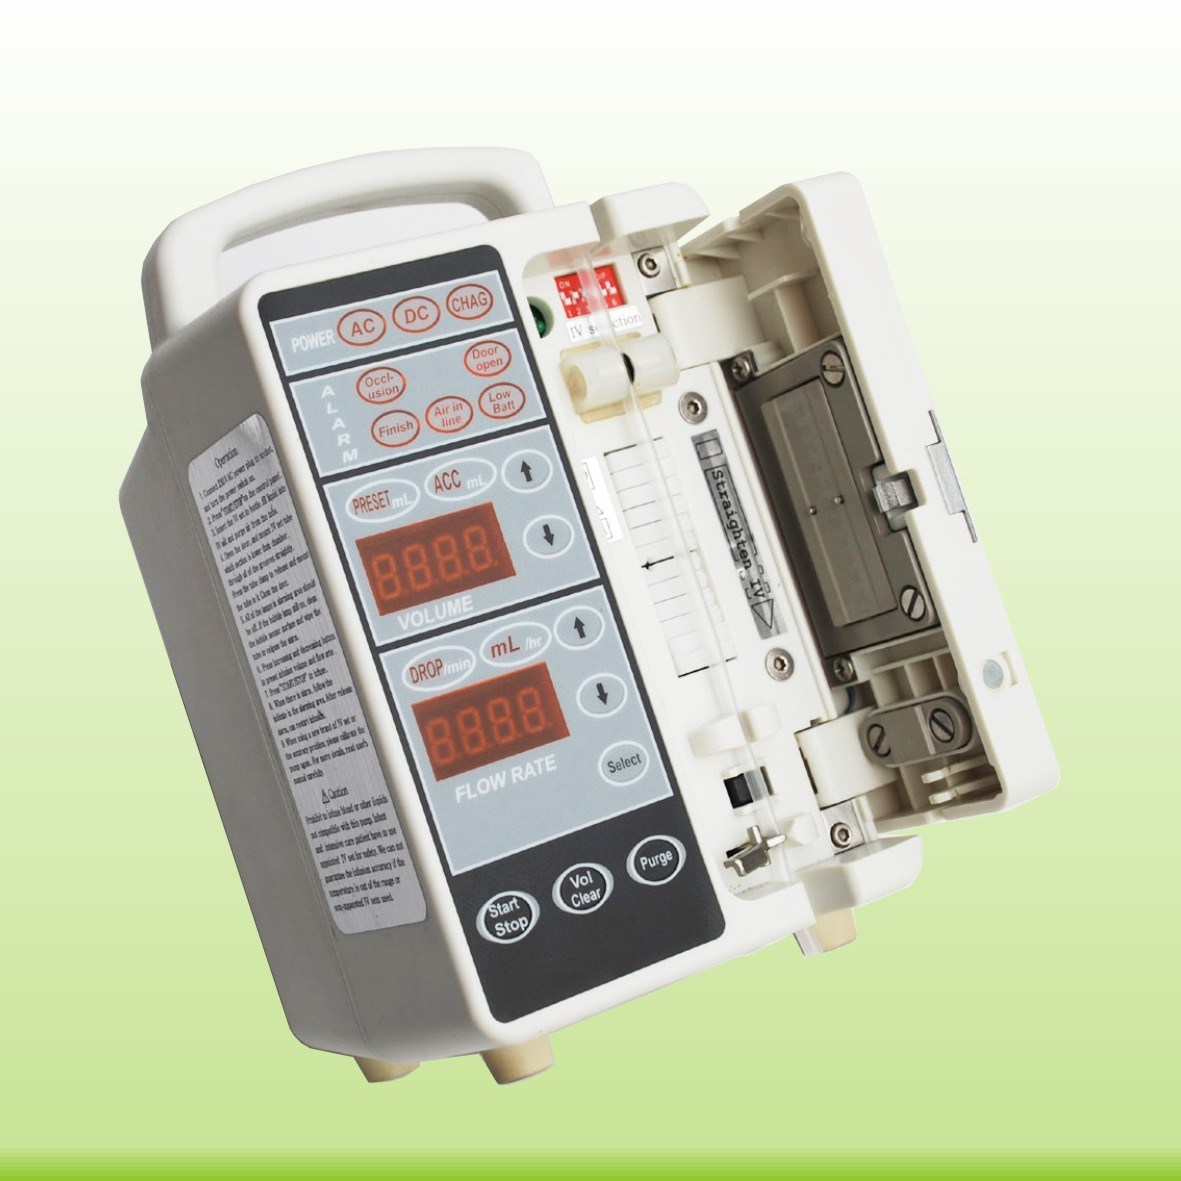 High Performance CE Marked Infusion Pump (SM-S01)